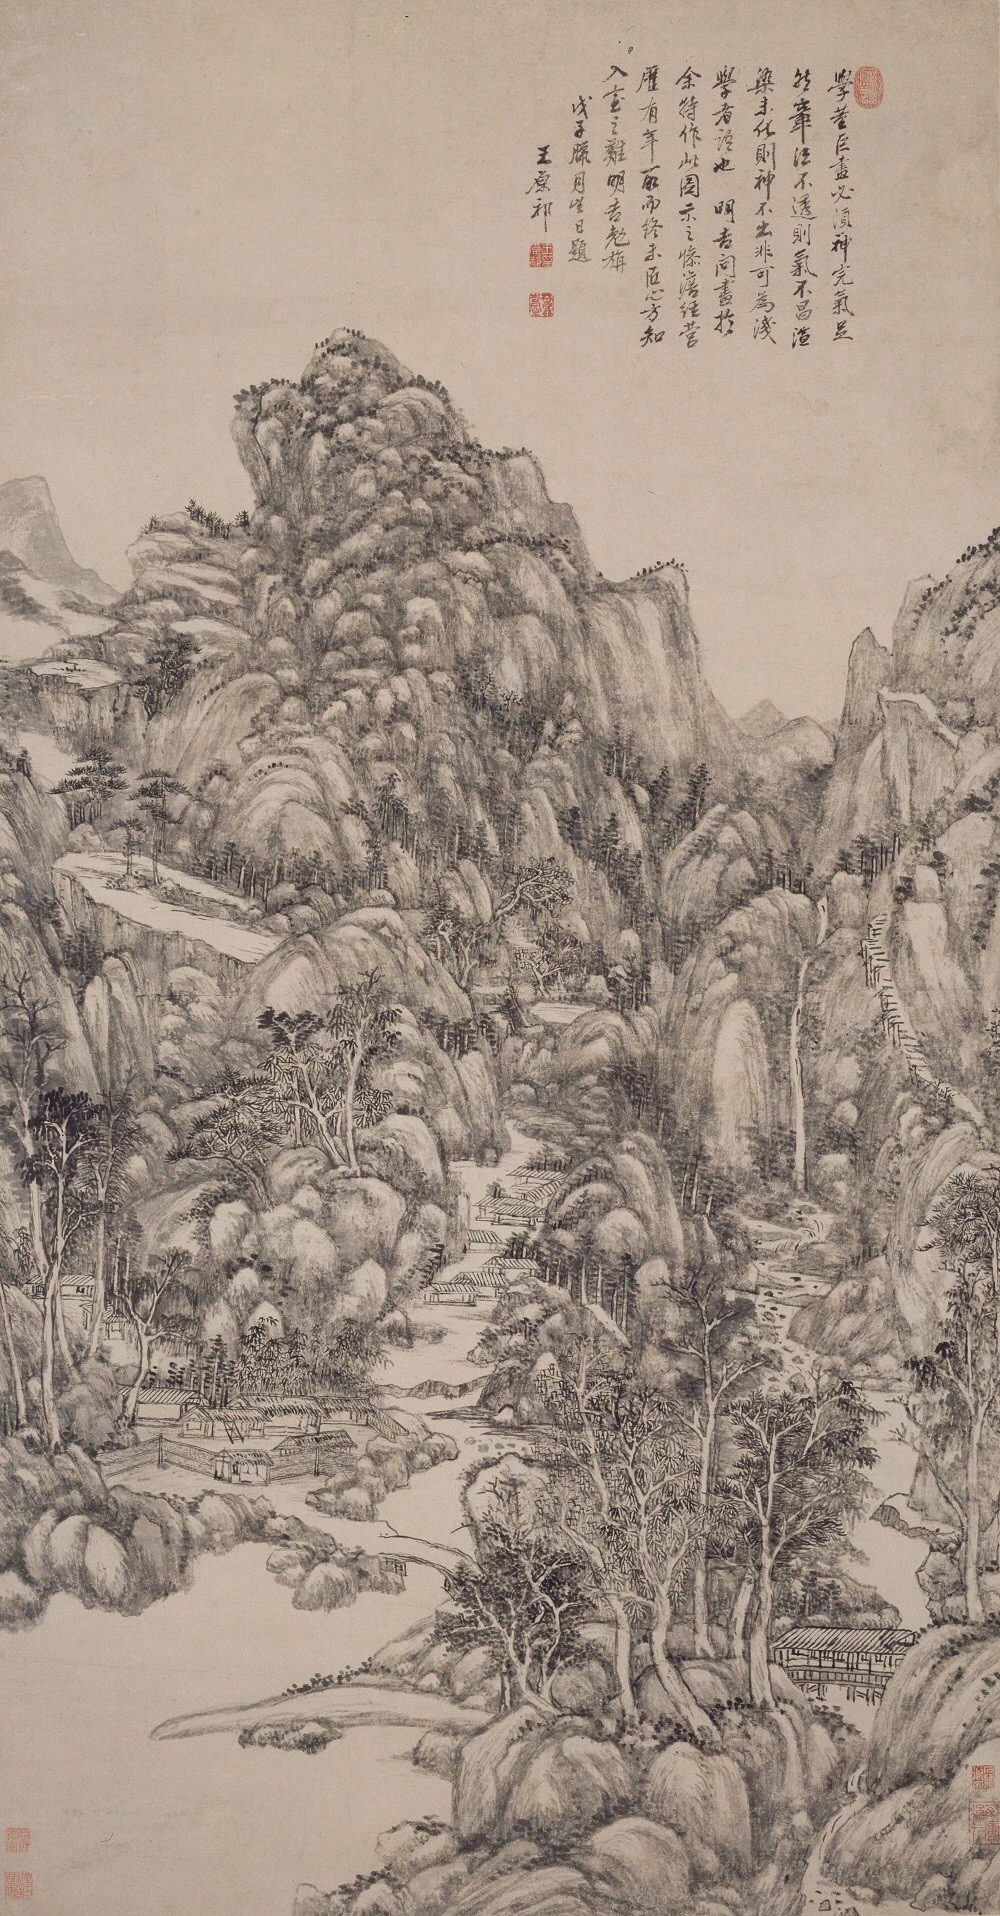 Wang Yuanqi: Robust and Vigorous Landscape